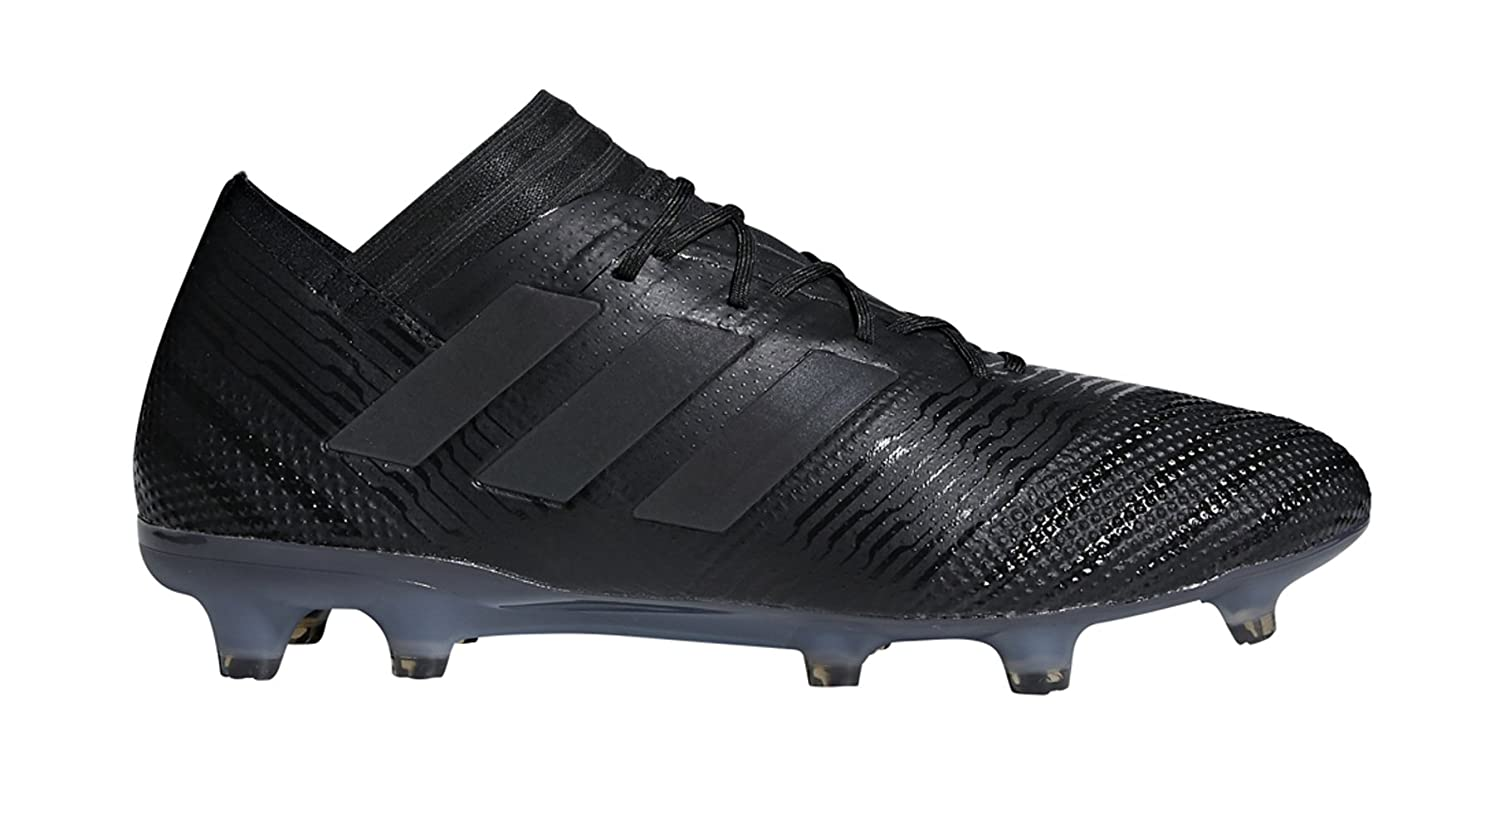 2d7e267e7 Amazon.com | adidas Men's Copa 18.2 FG Soccer Shoe, White/Core Black/Tactile  Gold, 9.5 M US | Soccer